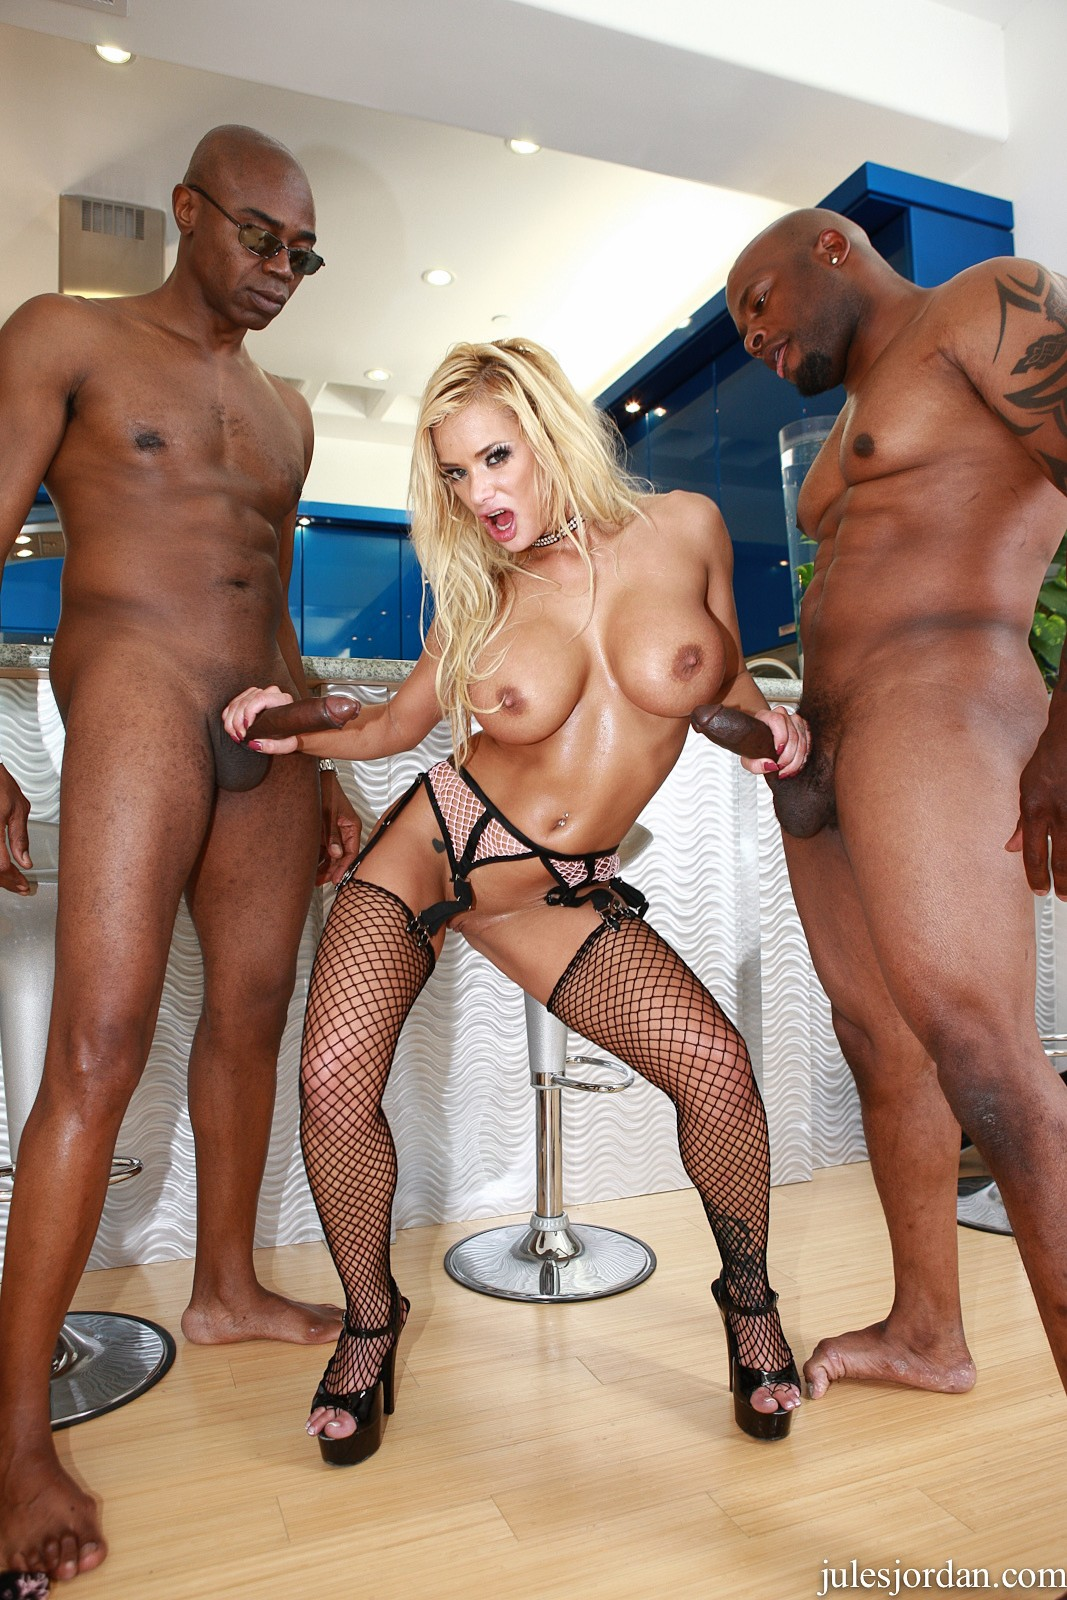 Entertaining question Nacked photo of shyla stylez believe